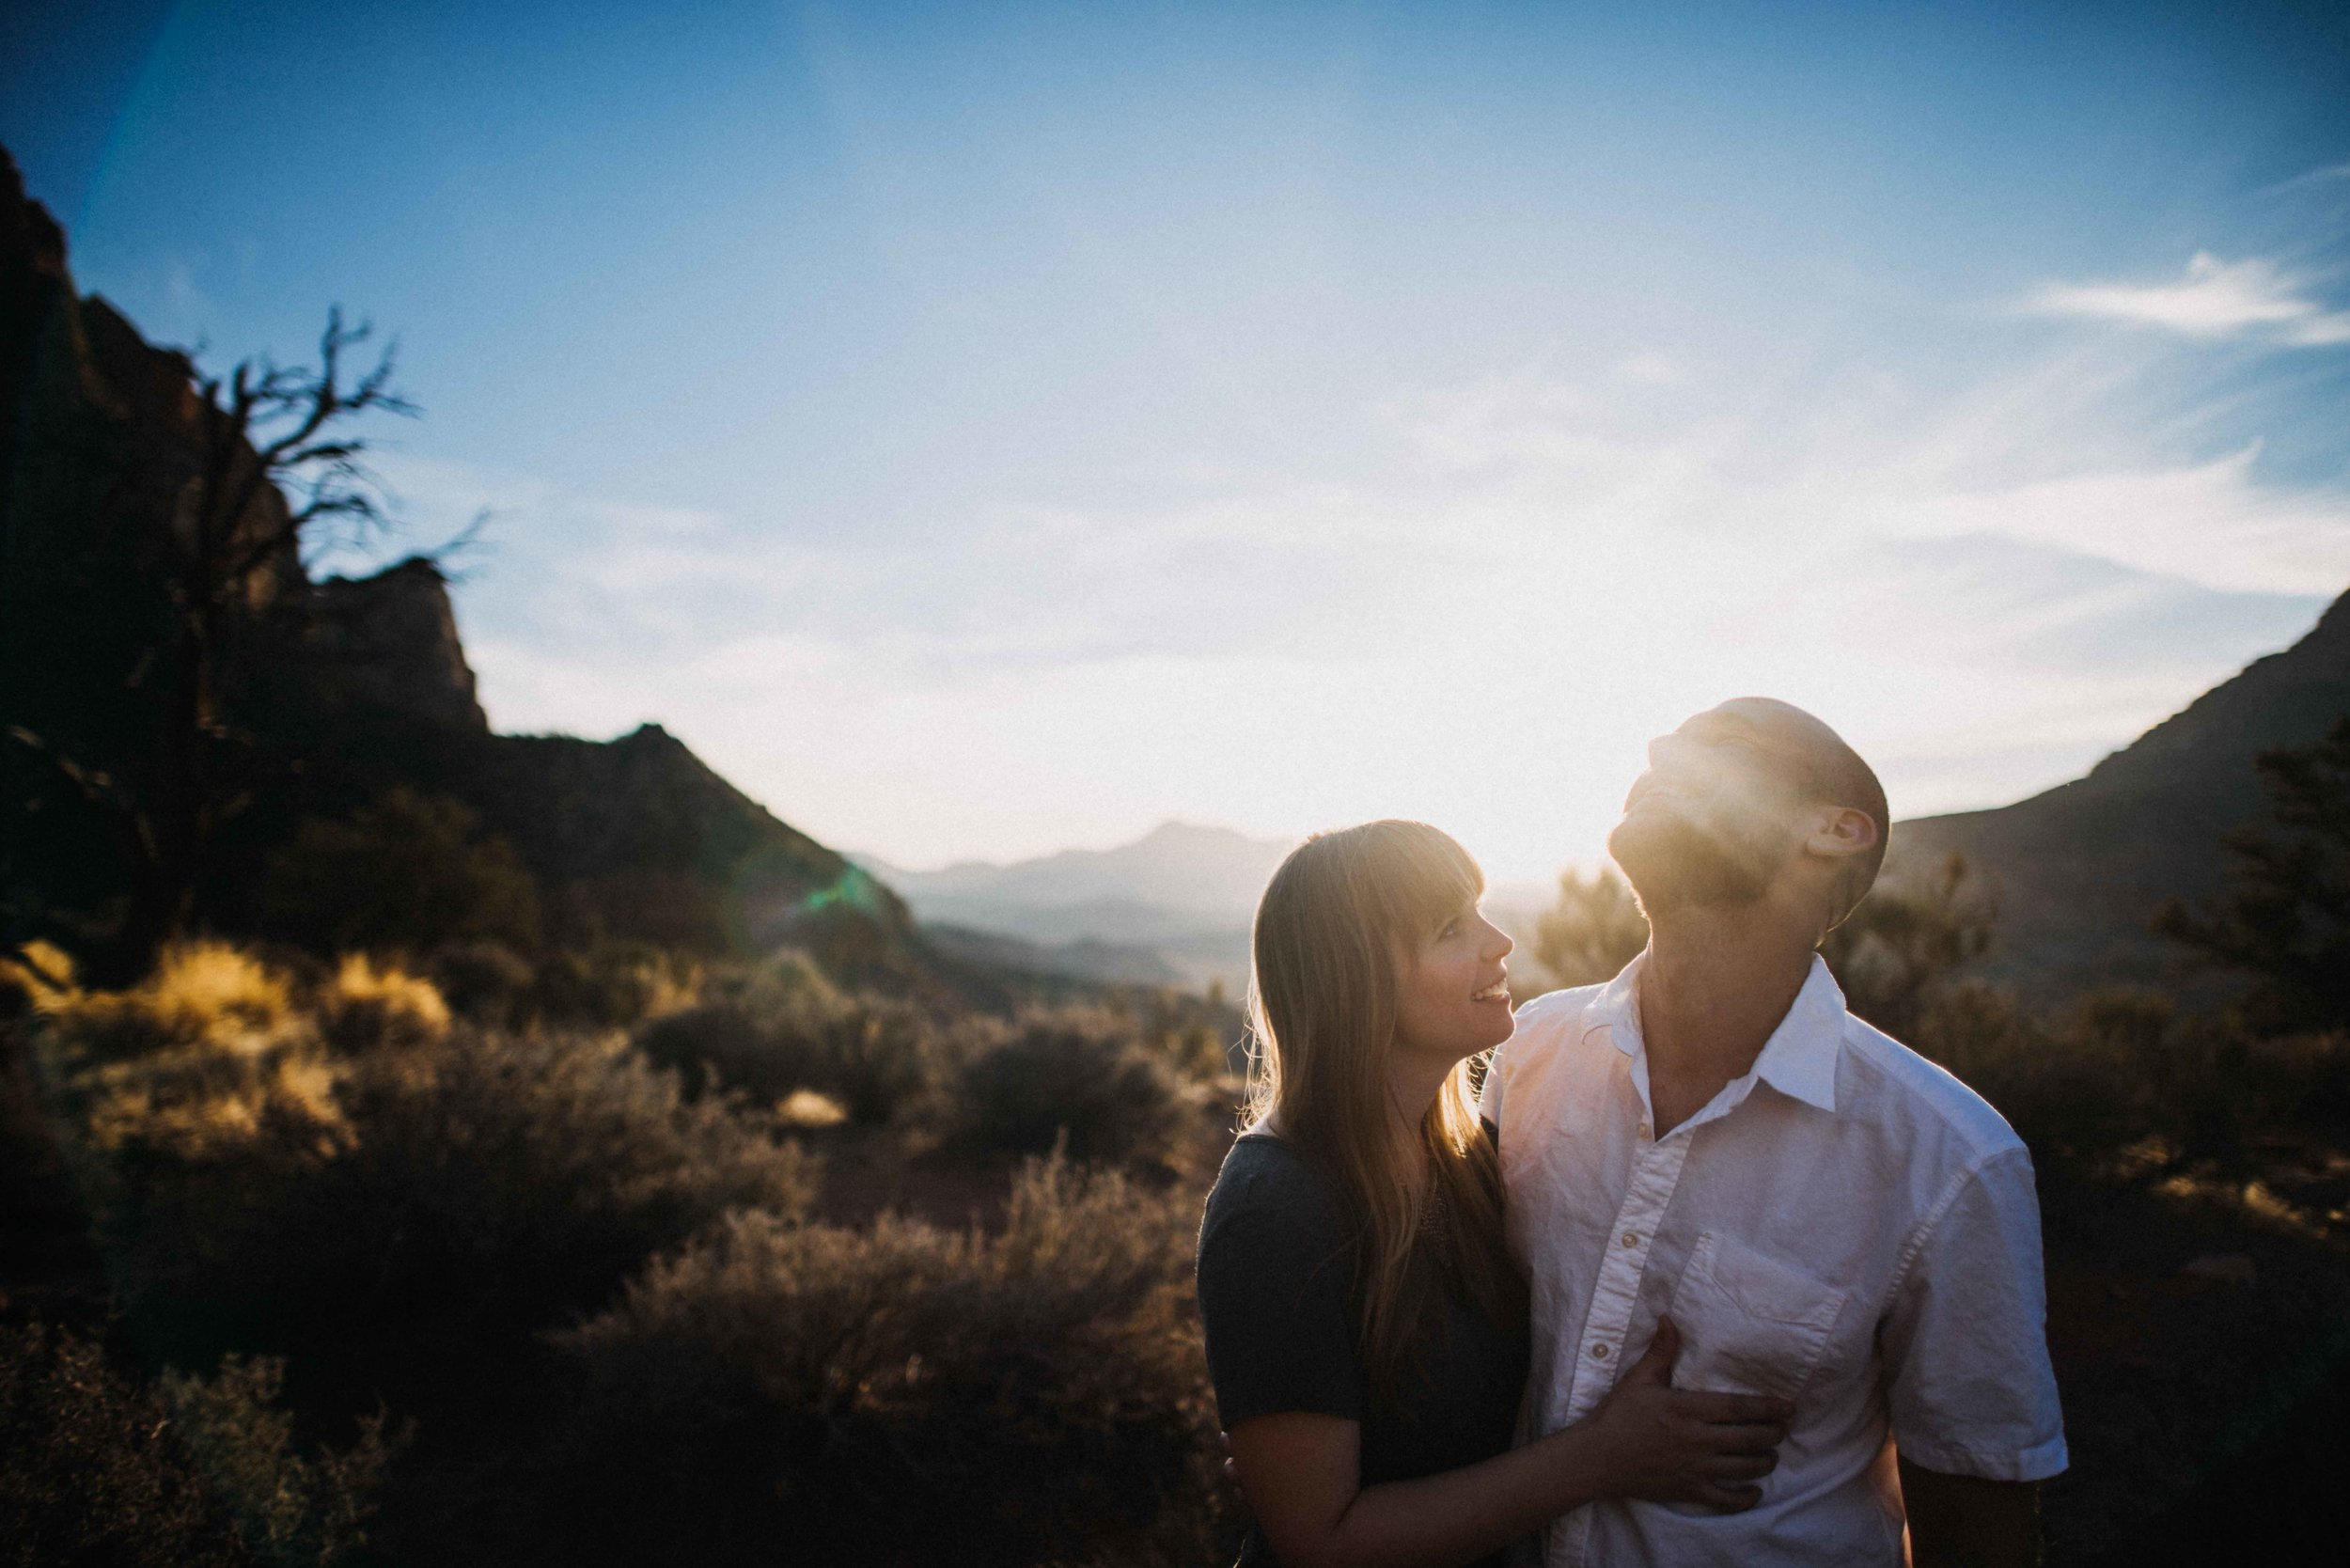 zion_national_park_utah_wedding_photography_engagement-3114.JPG